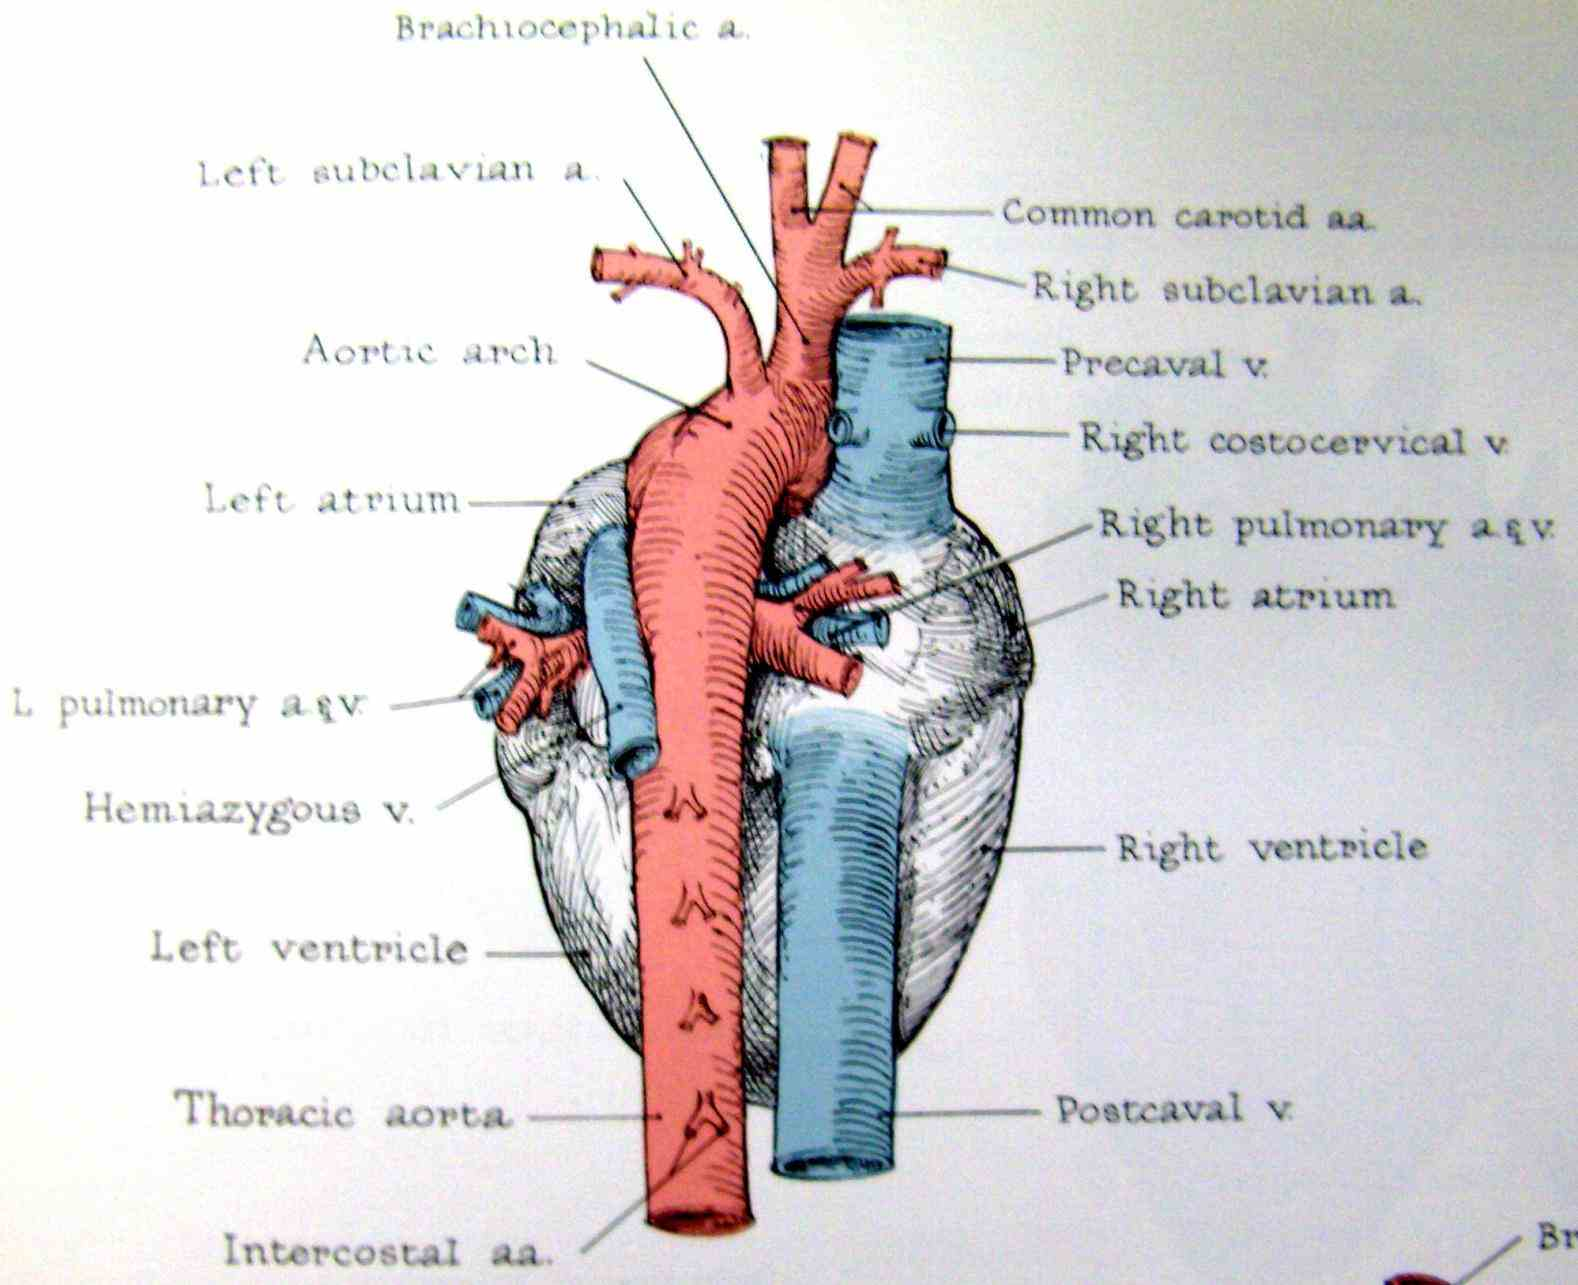 the great vessels of heart provide passage blood to and from arteries veins there are four in all corresponding